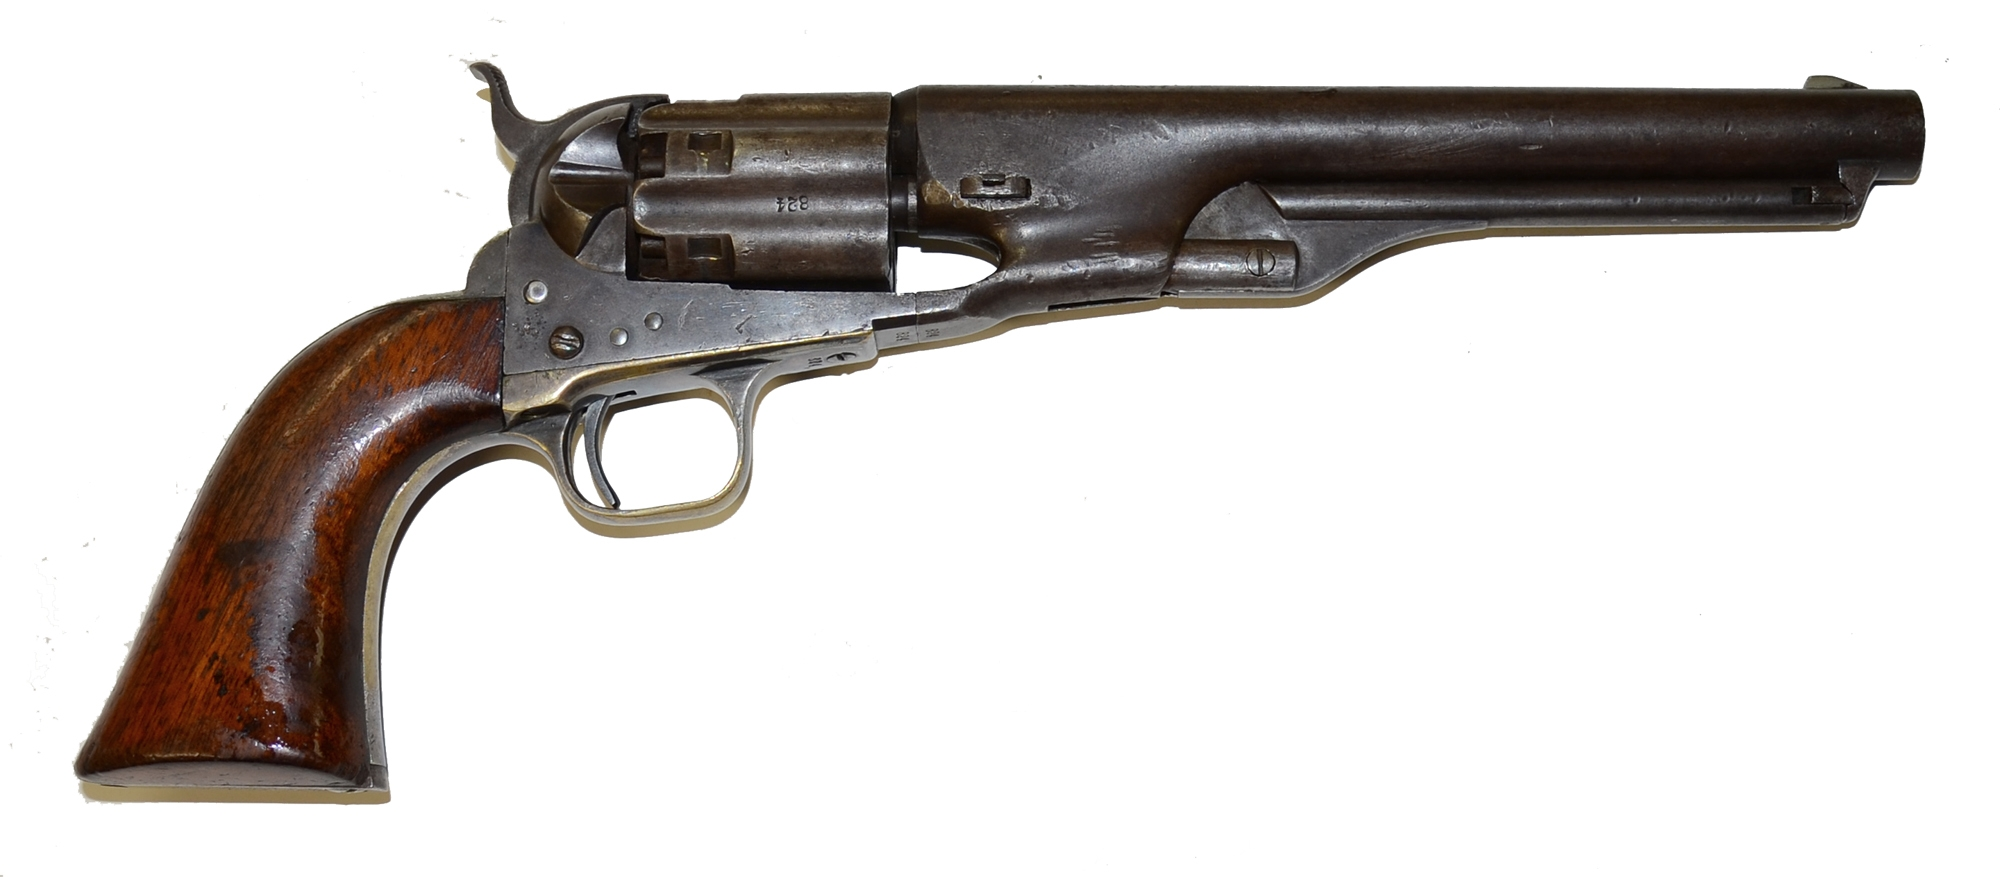 IDENTIFIED M-1860 COLT ARMY REVOLVER WITH FLUTED CYLINDER, S/N 824